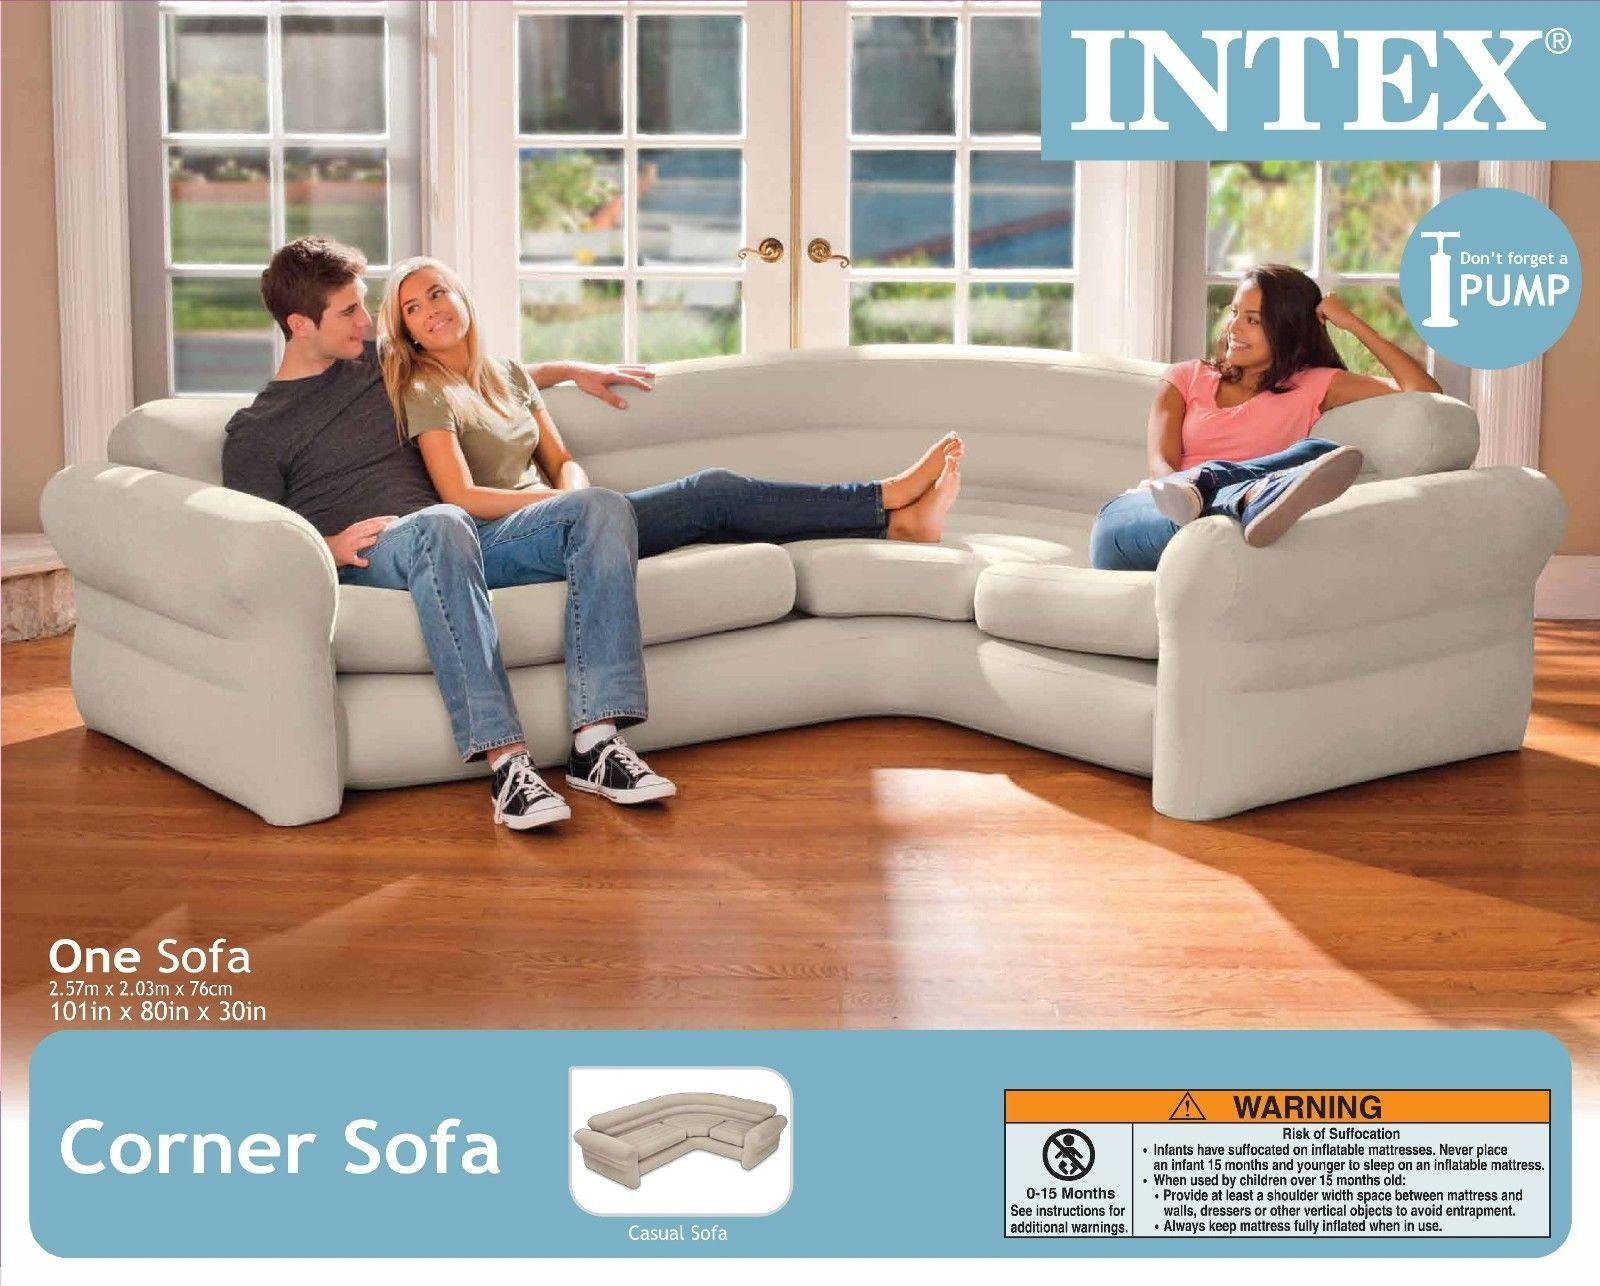 Intex Inflatable Corner Sofa Portable Modern Contemporary Air Intended For Intex Air Couches (View 2 of 20)